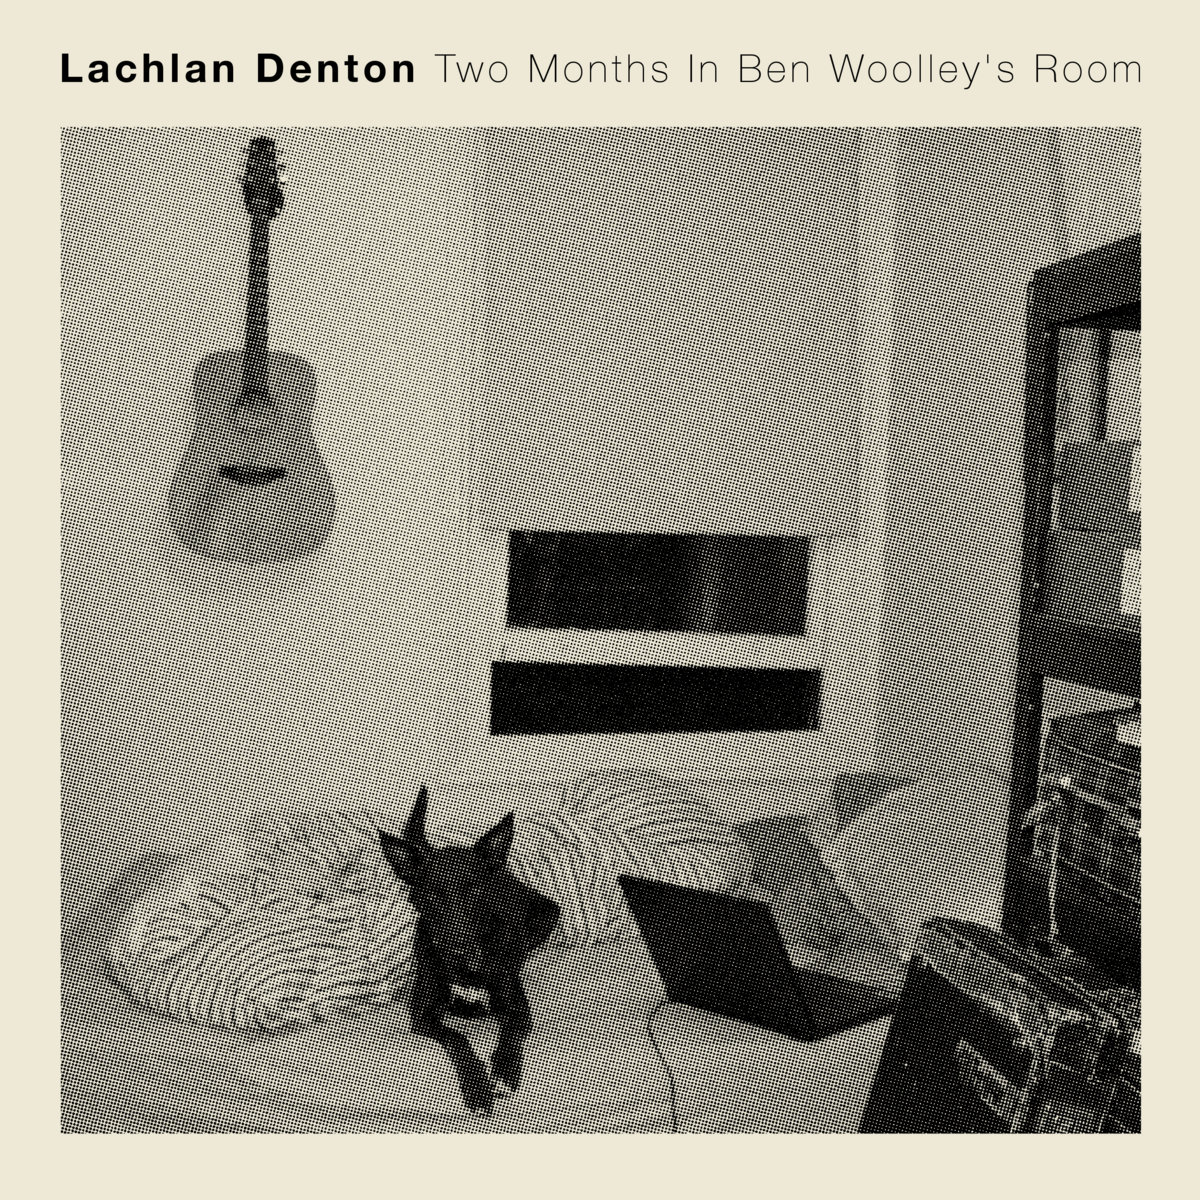 Lachlan Denton - Two Months In Ben Woolley's Room